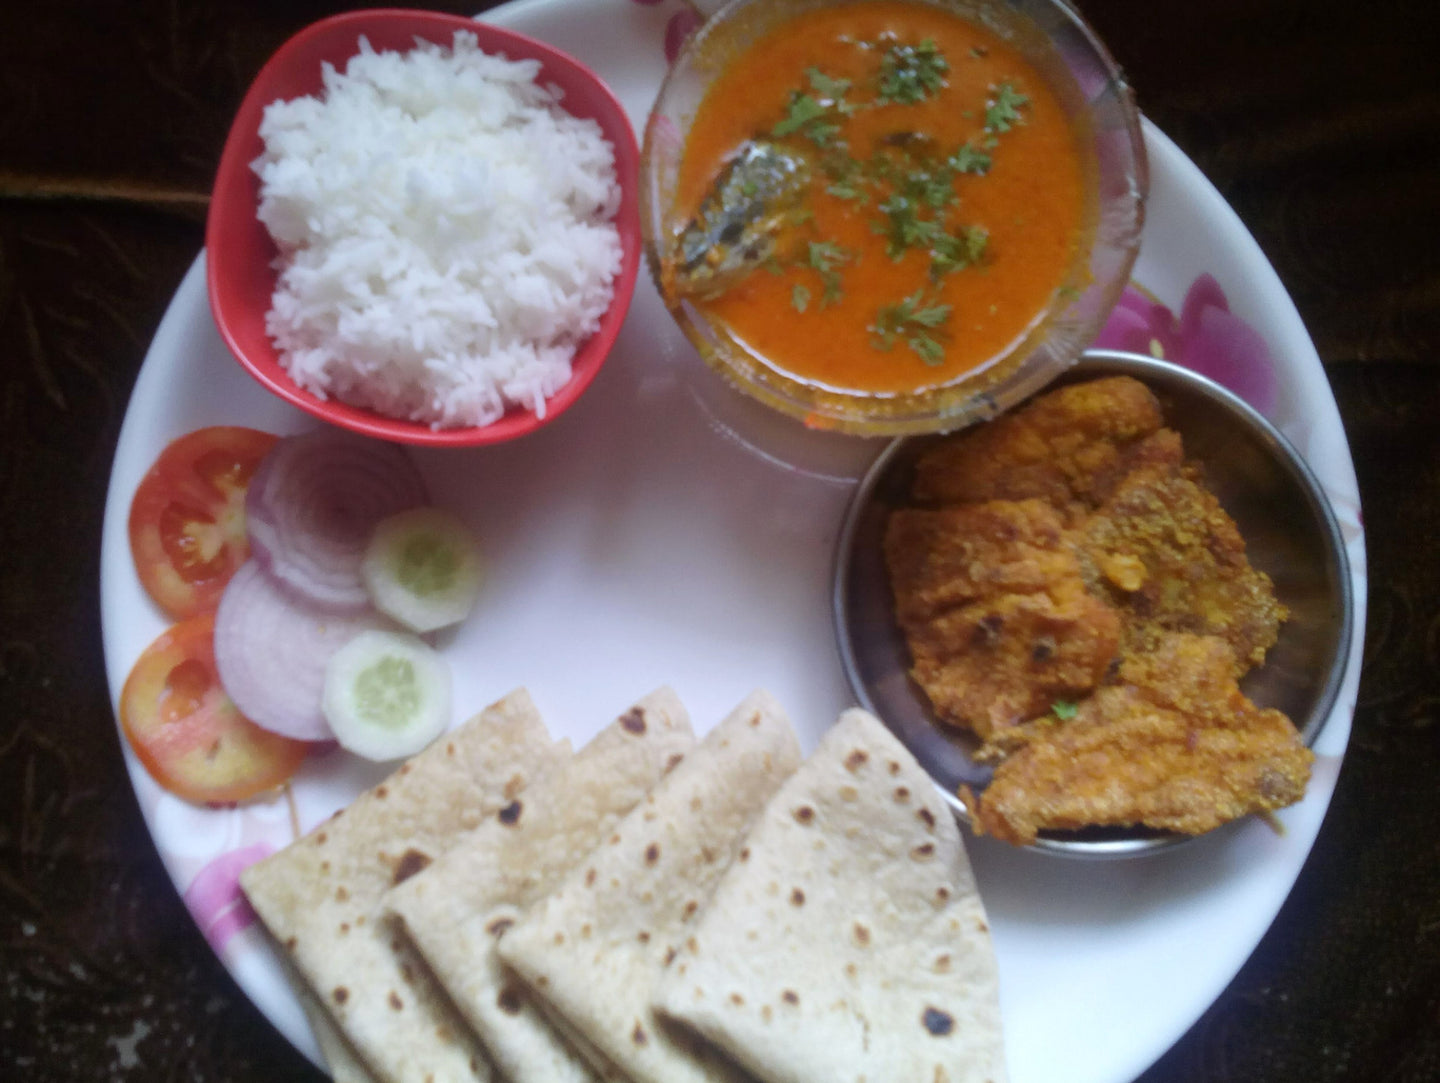 Bangda Fish Curry (1), Rice, Chapati, Bombil Fry (4), Salad